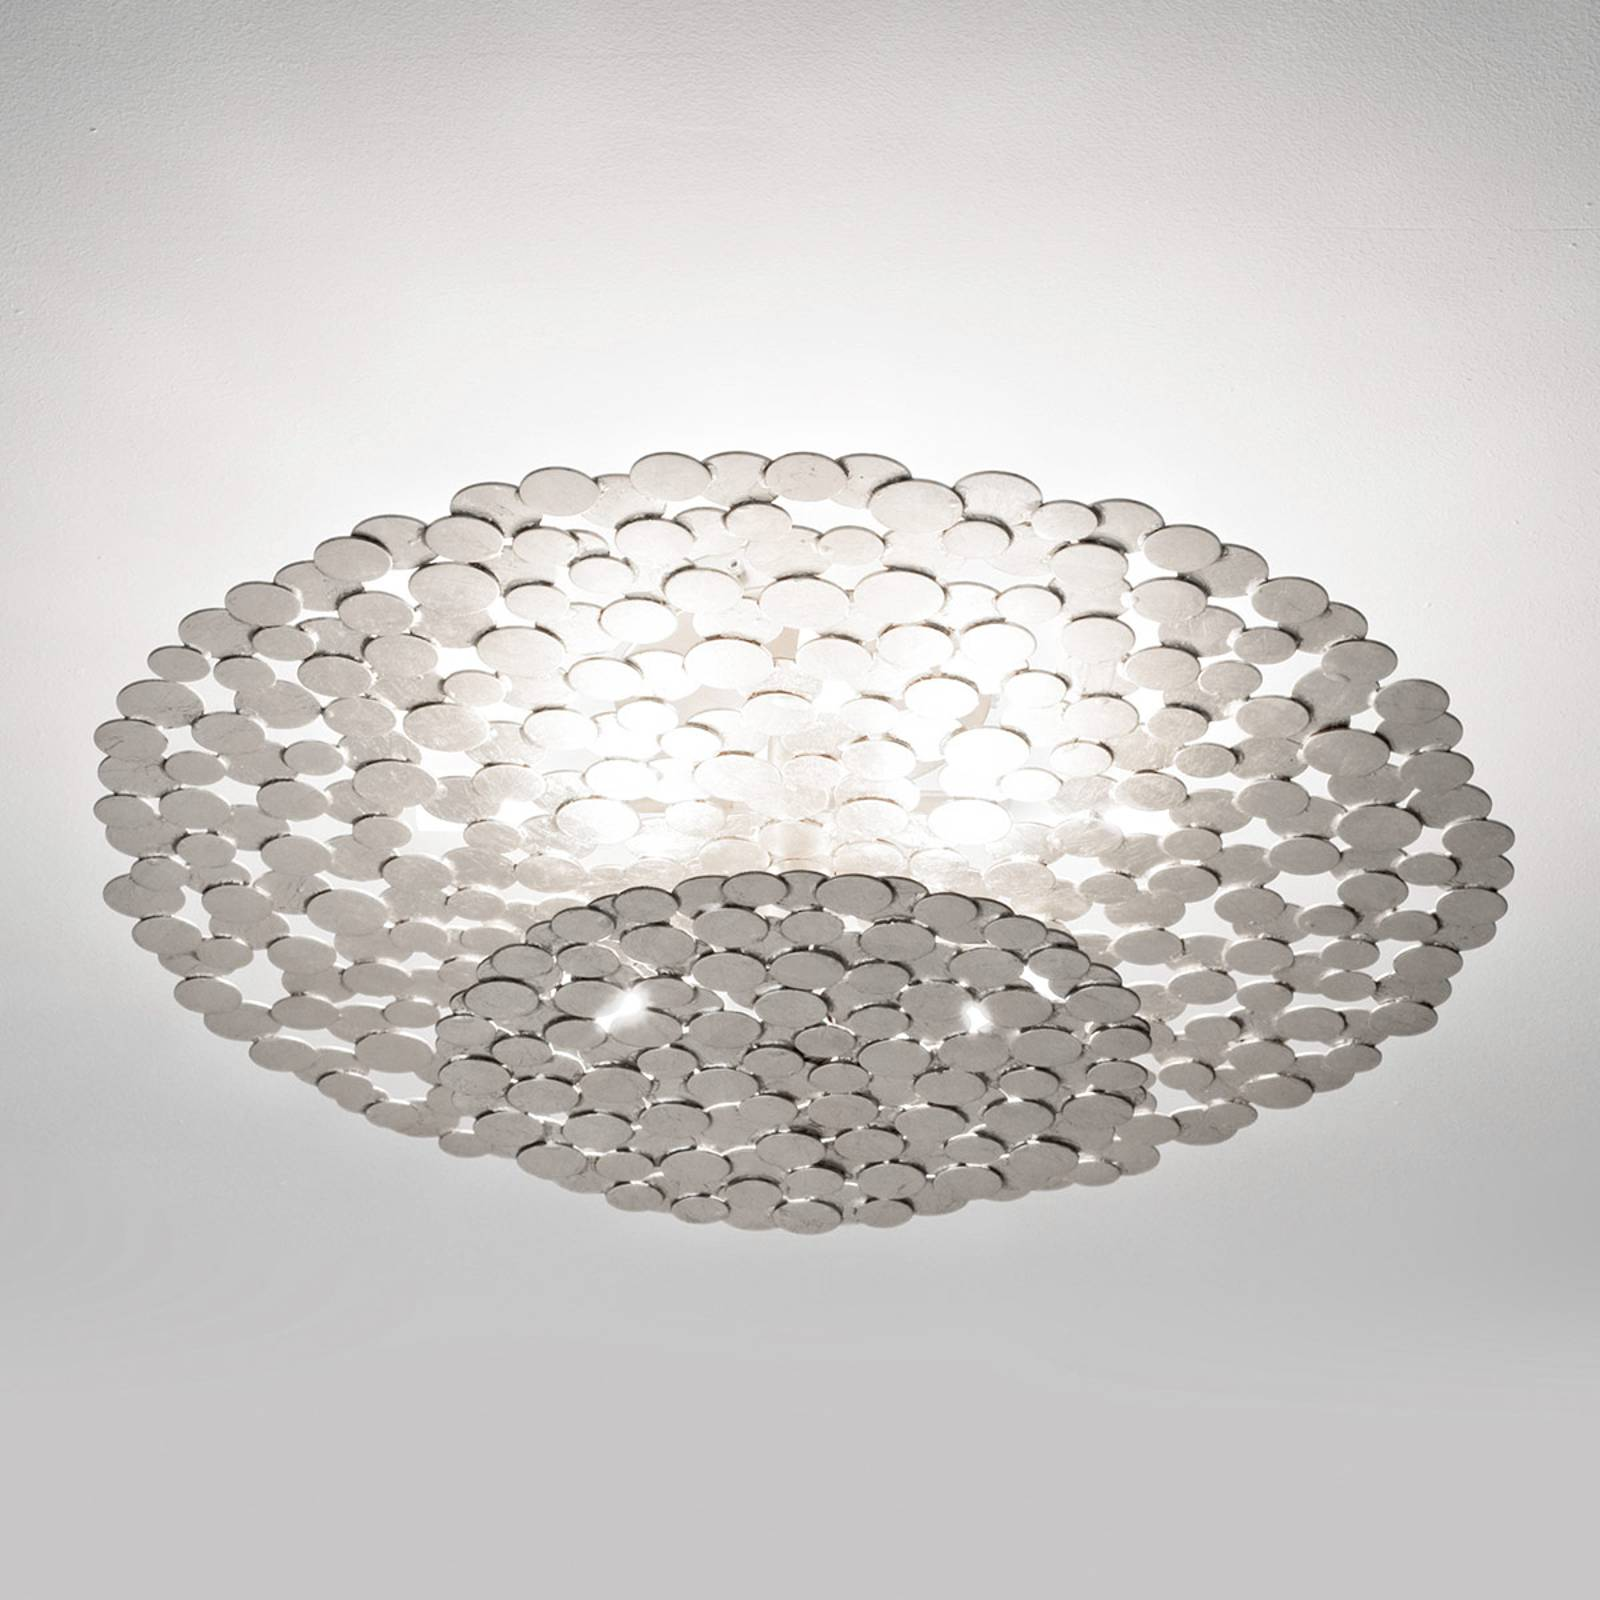 Fascinating Tresor ceiling light 60 cm, silver from Terzani